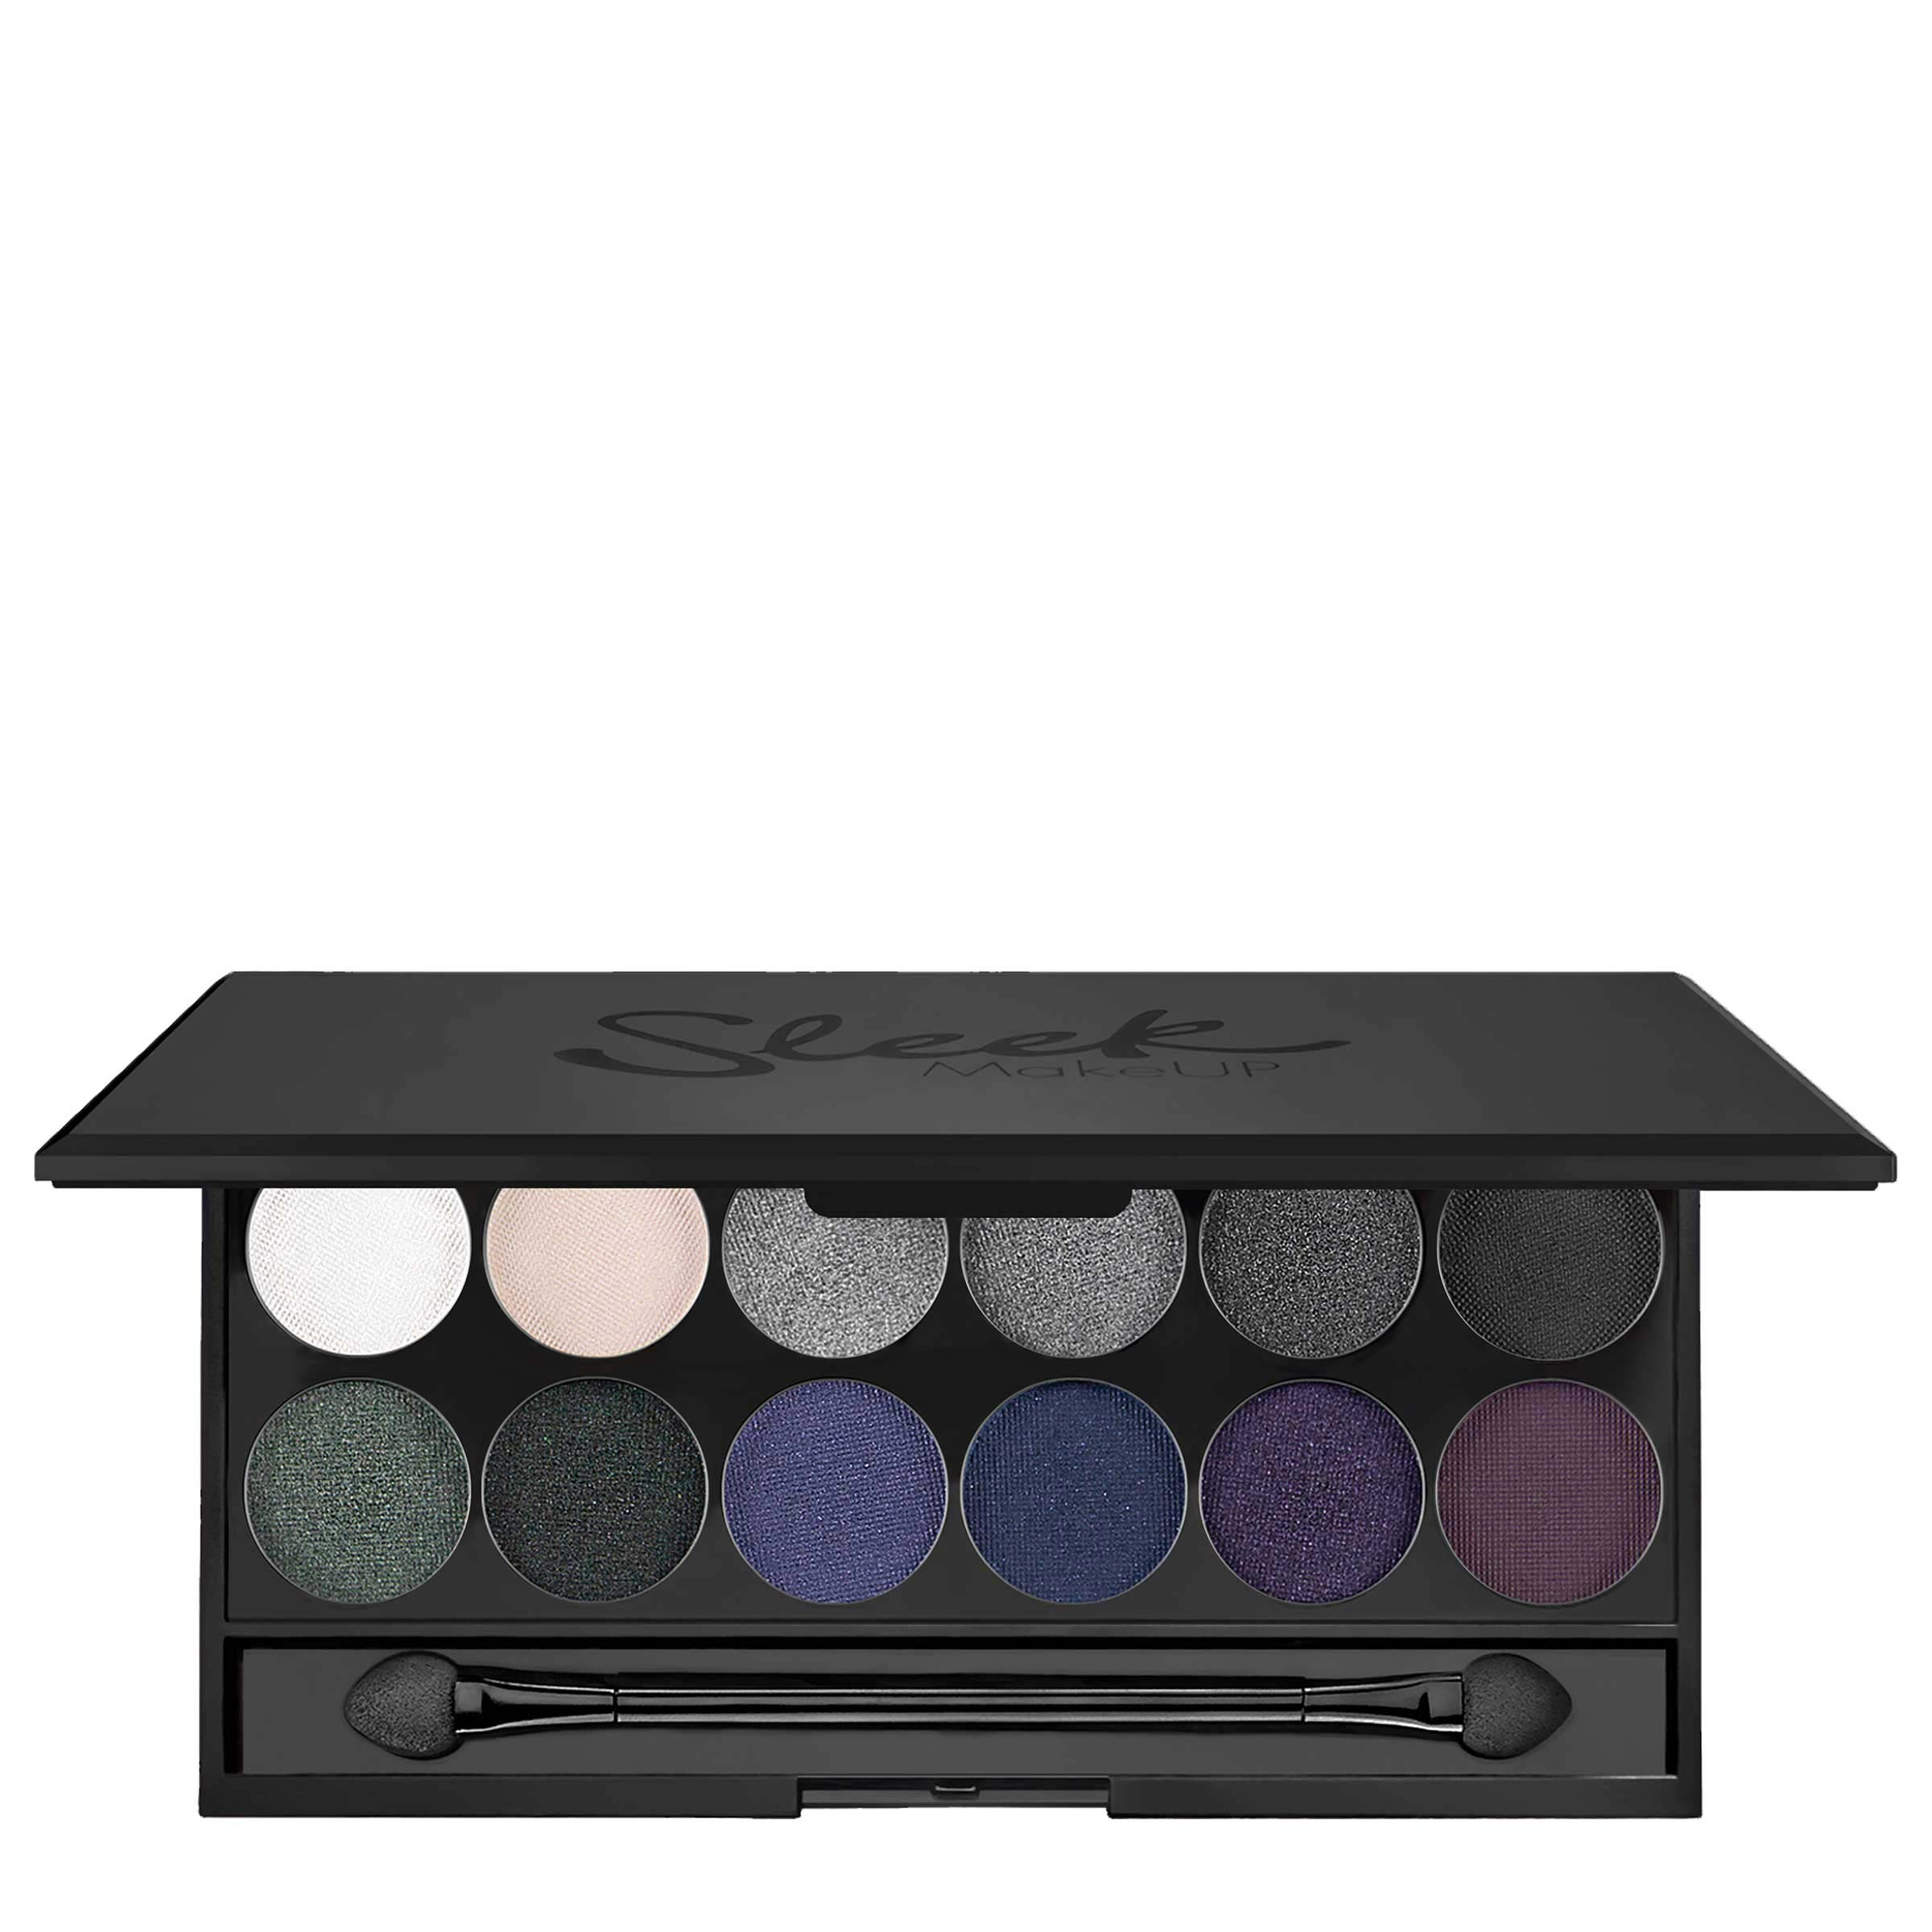 I Divine Eyeshadow Palette Bad Girl Sleek Makeup